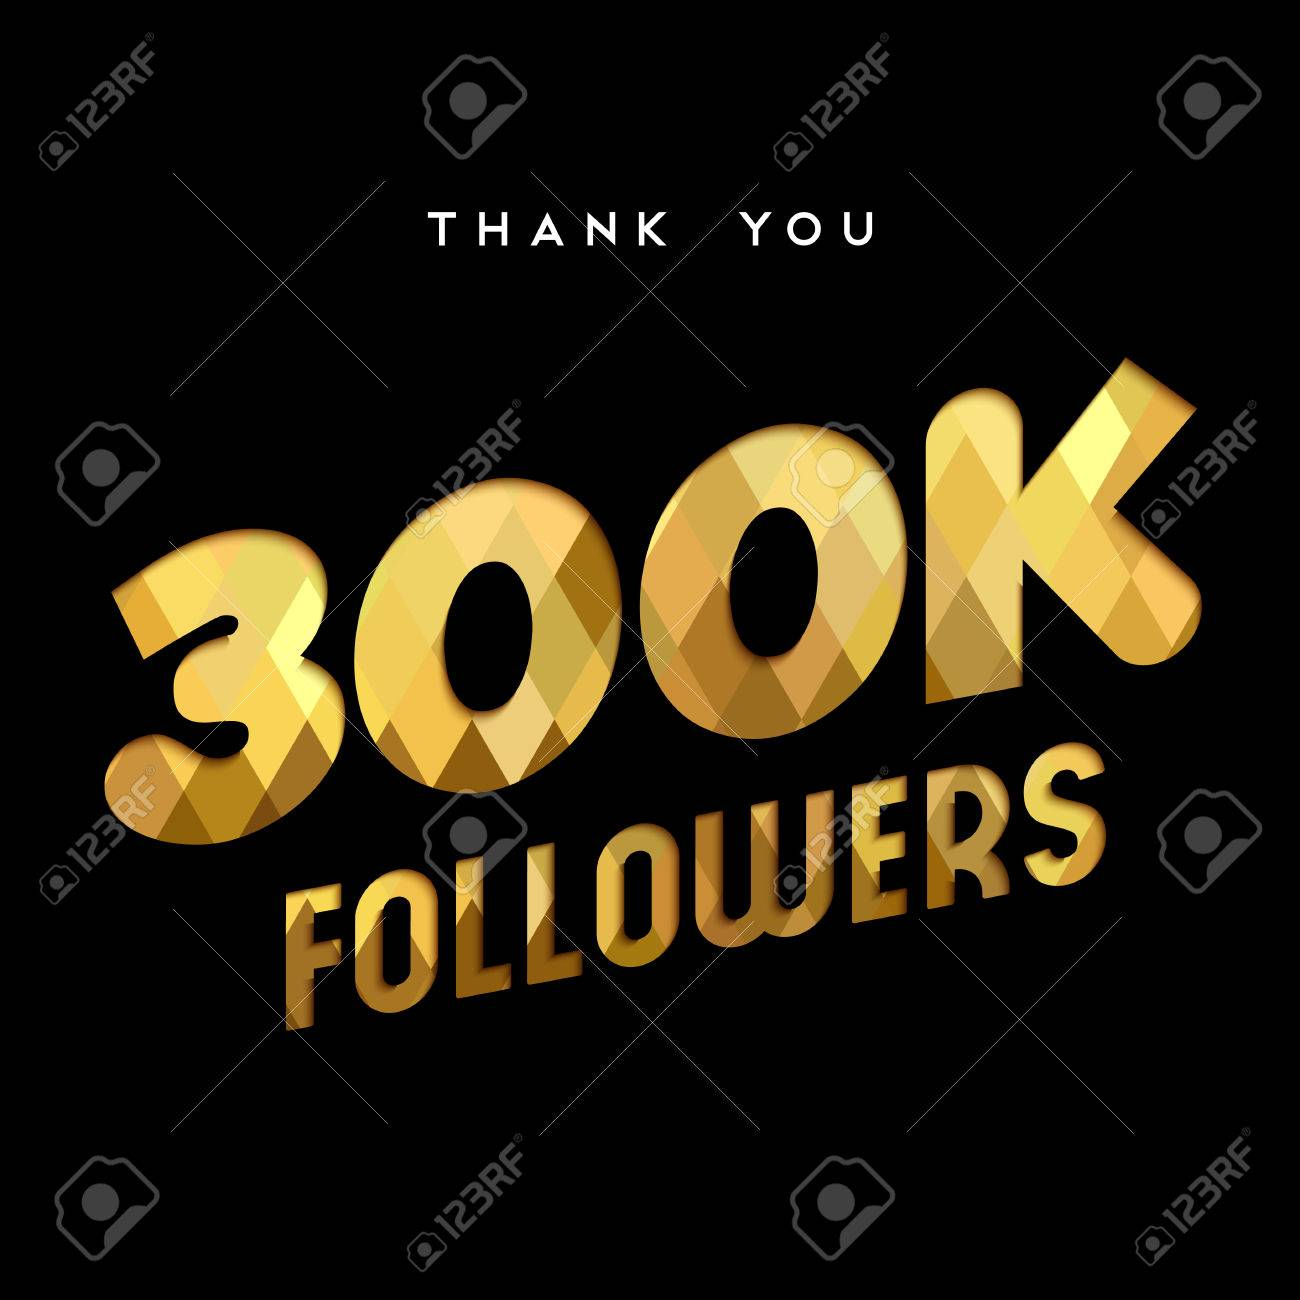 300000 followers thank you gold paper cut number illustration. Special 300k  user goal celebration for